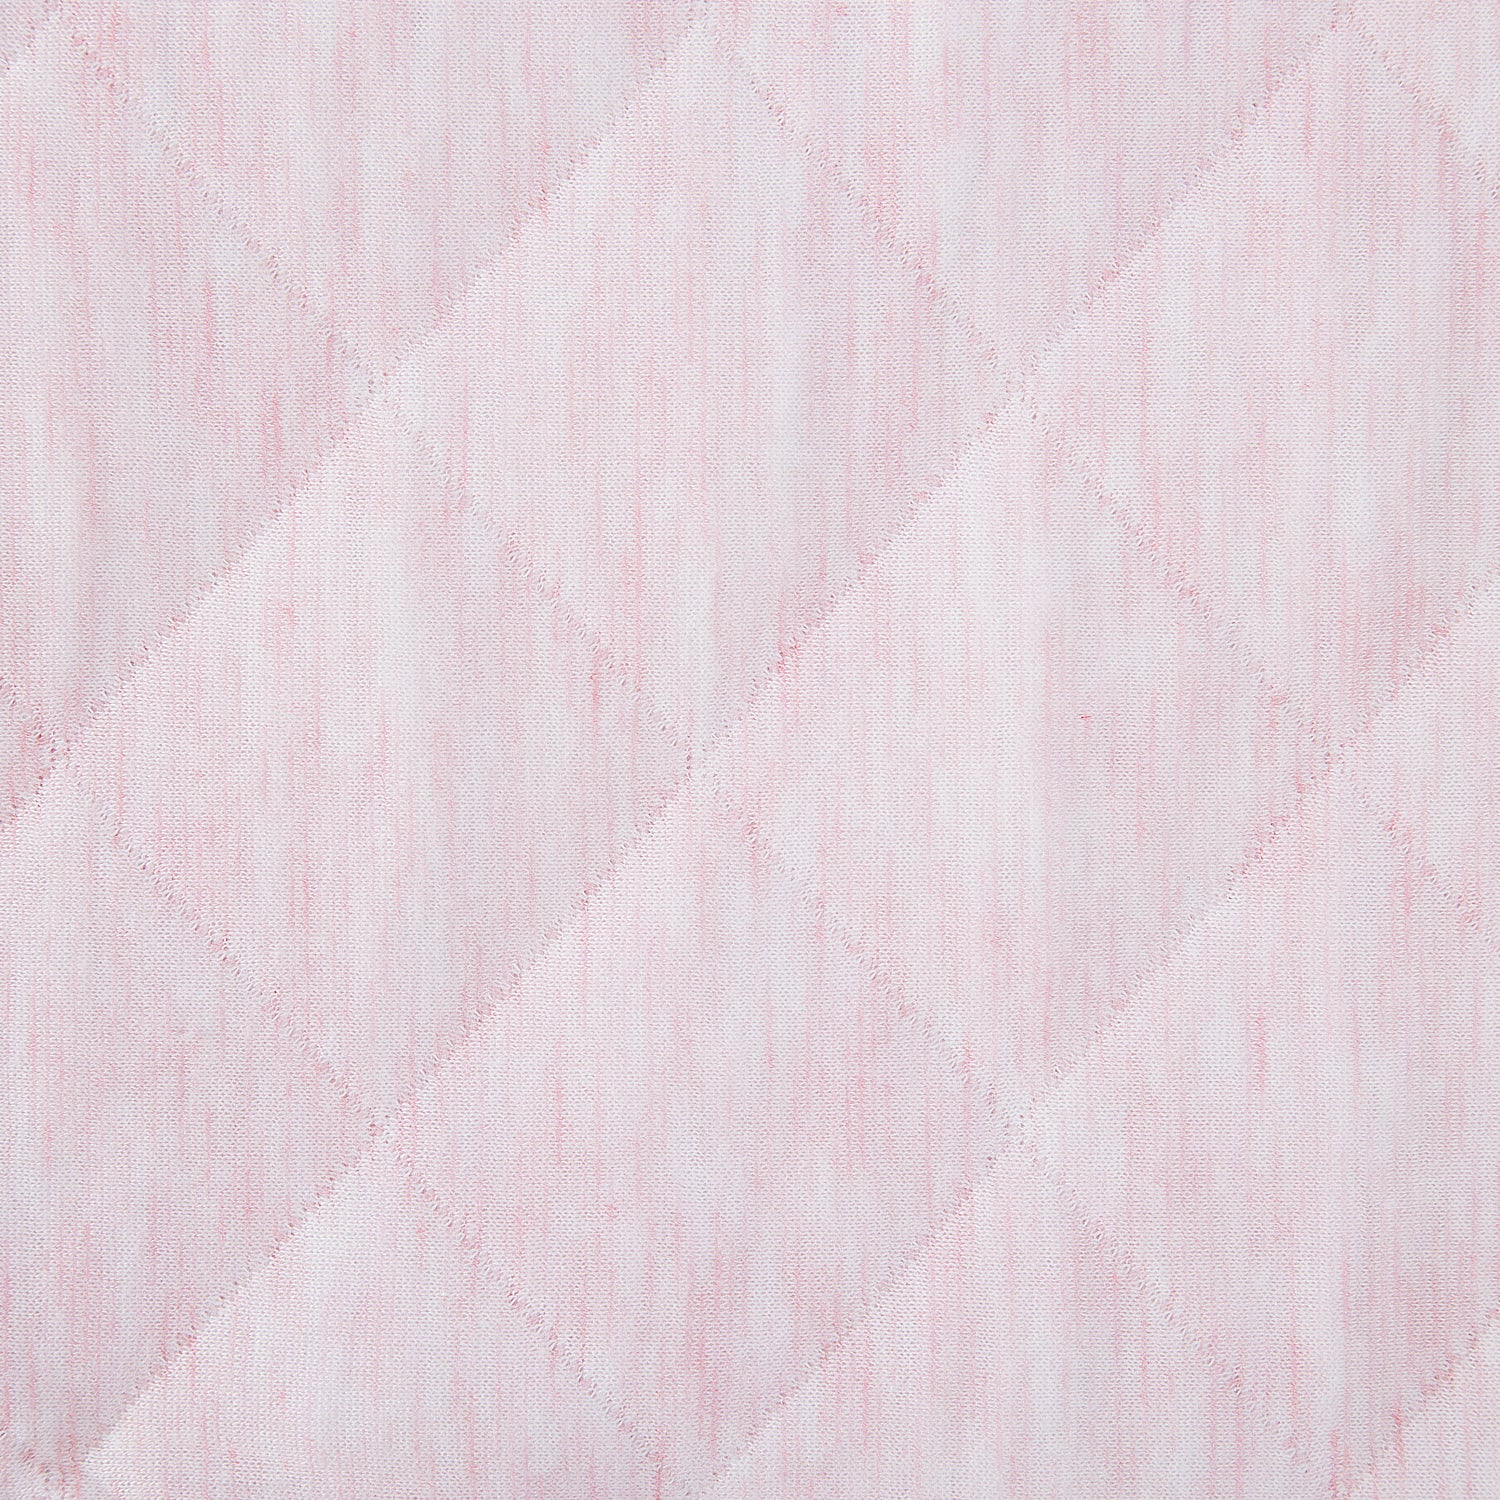 Ultra-Soft Heather Pink Baby Blanket